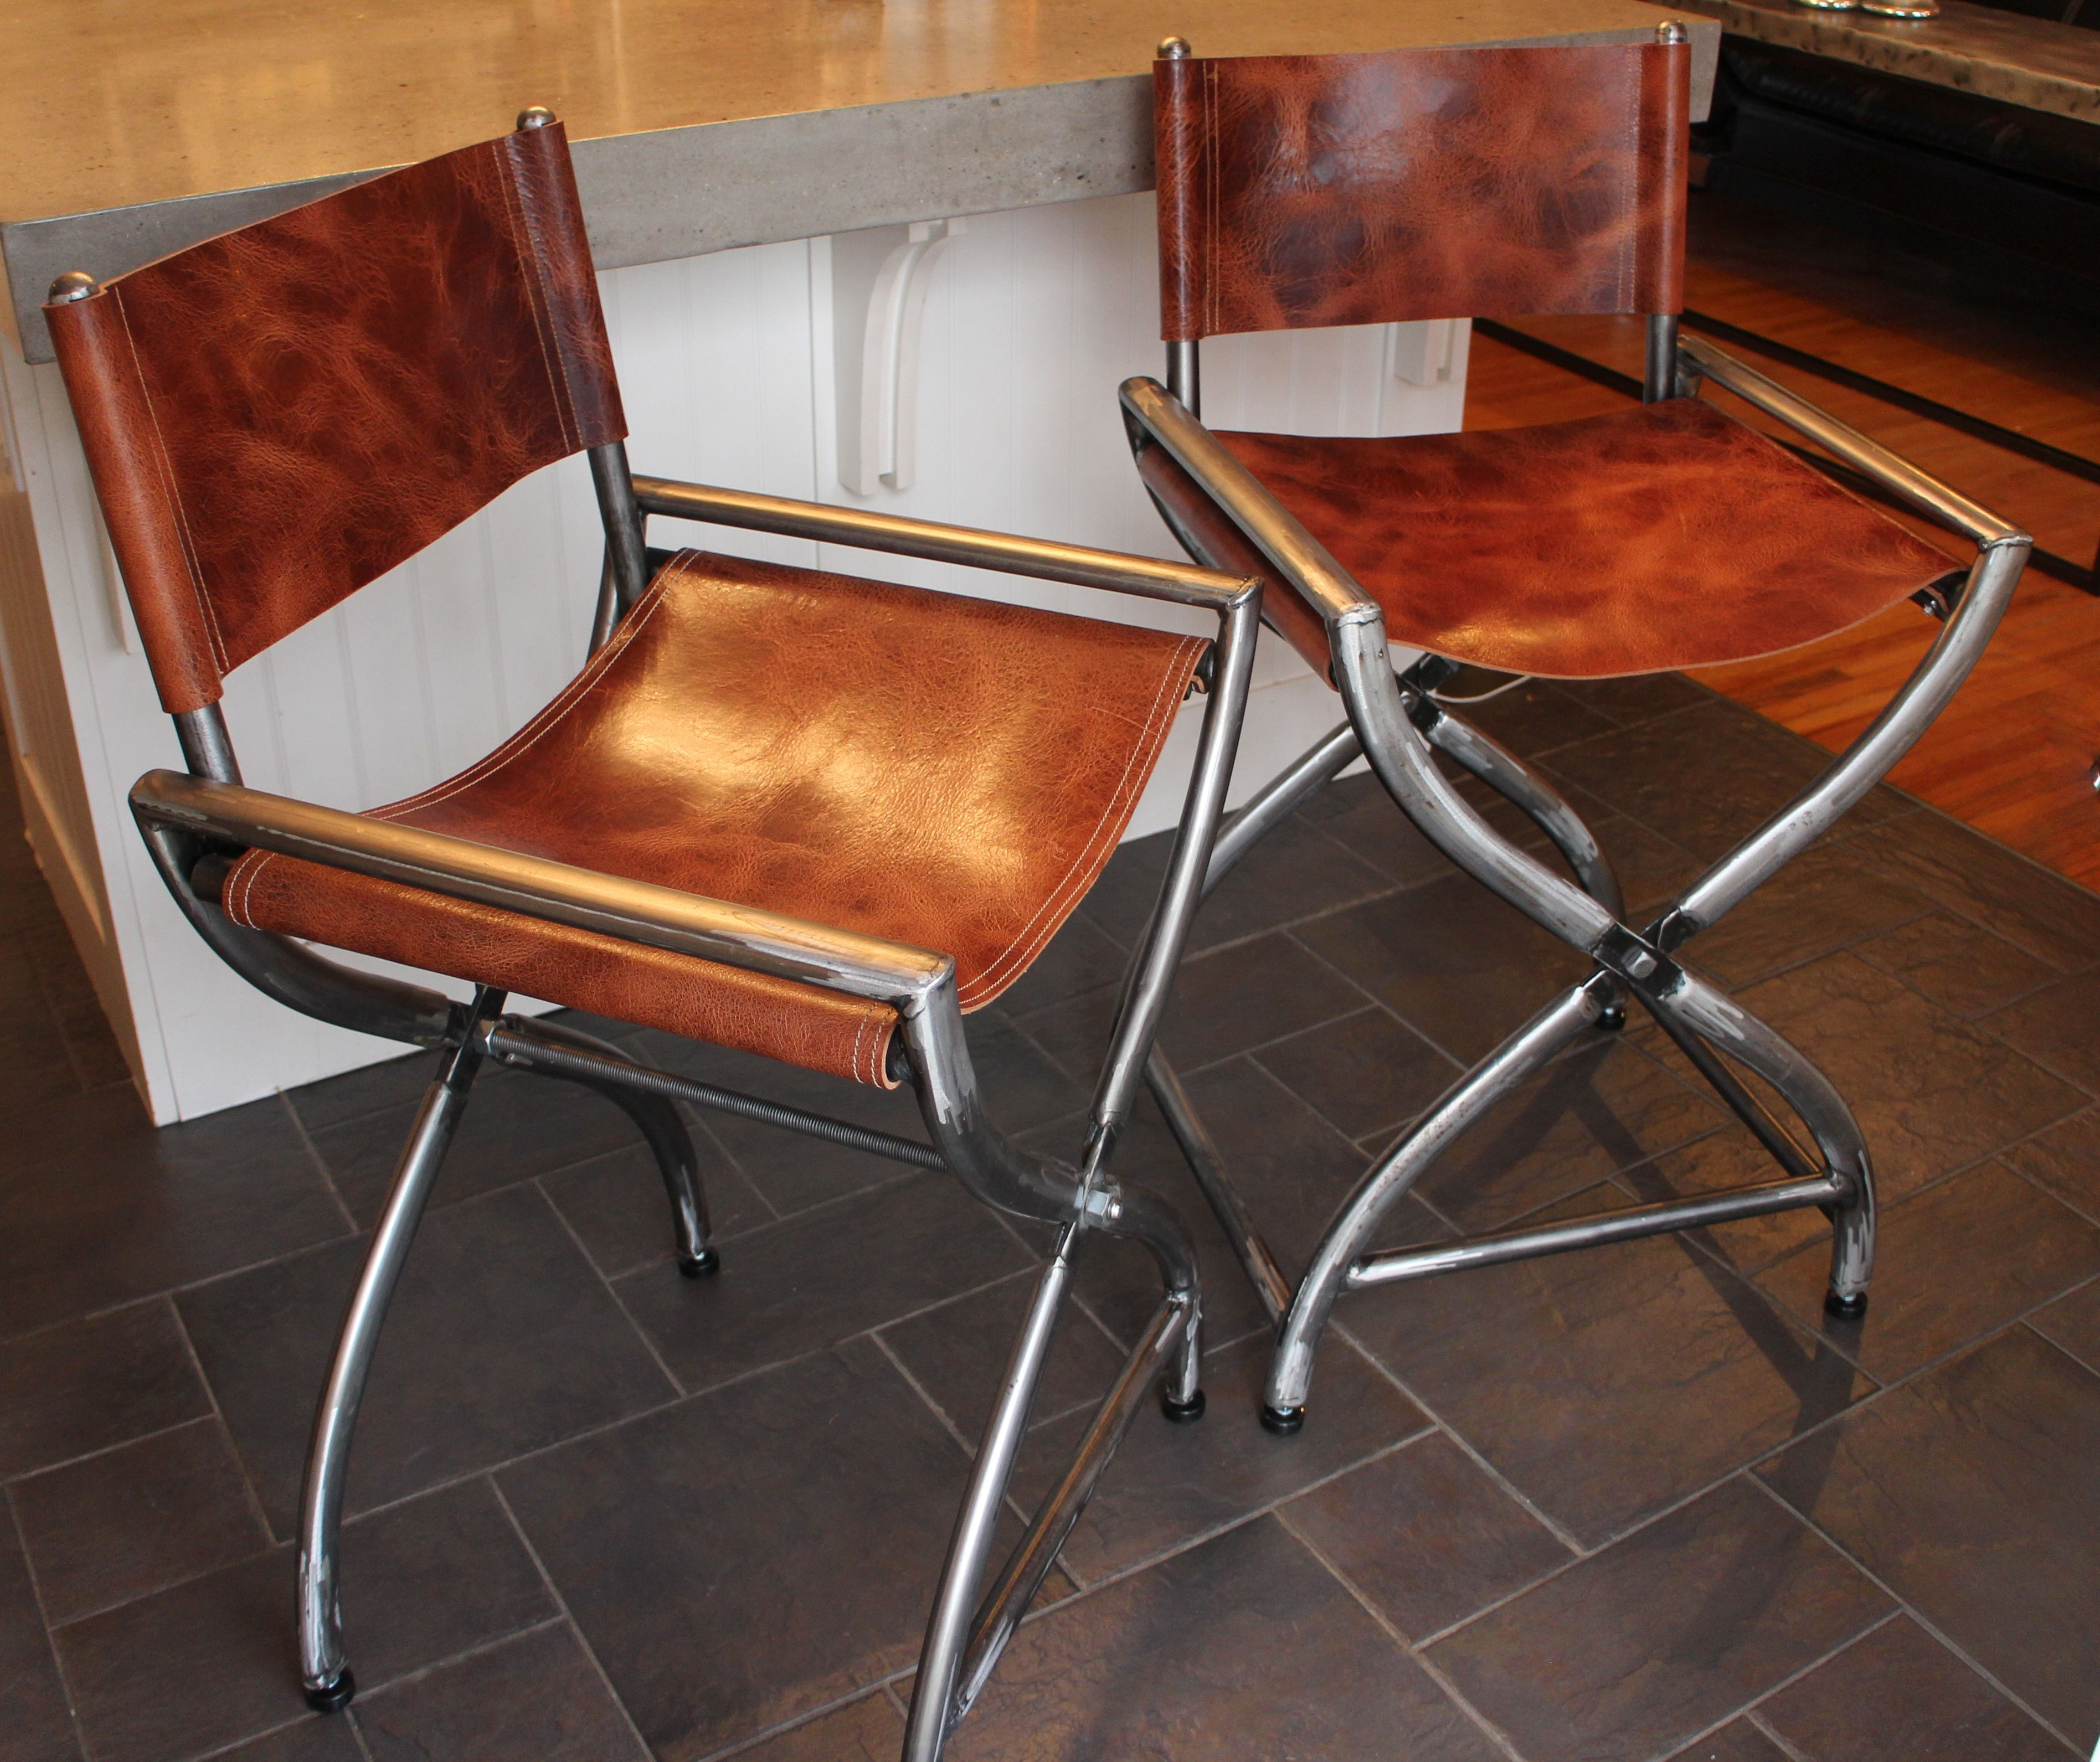 Kitchen Stool Director Chairs All Raw Steel Wred In Thick Buffalo Leather